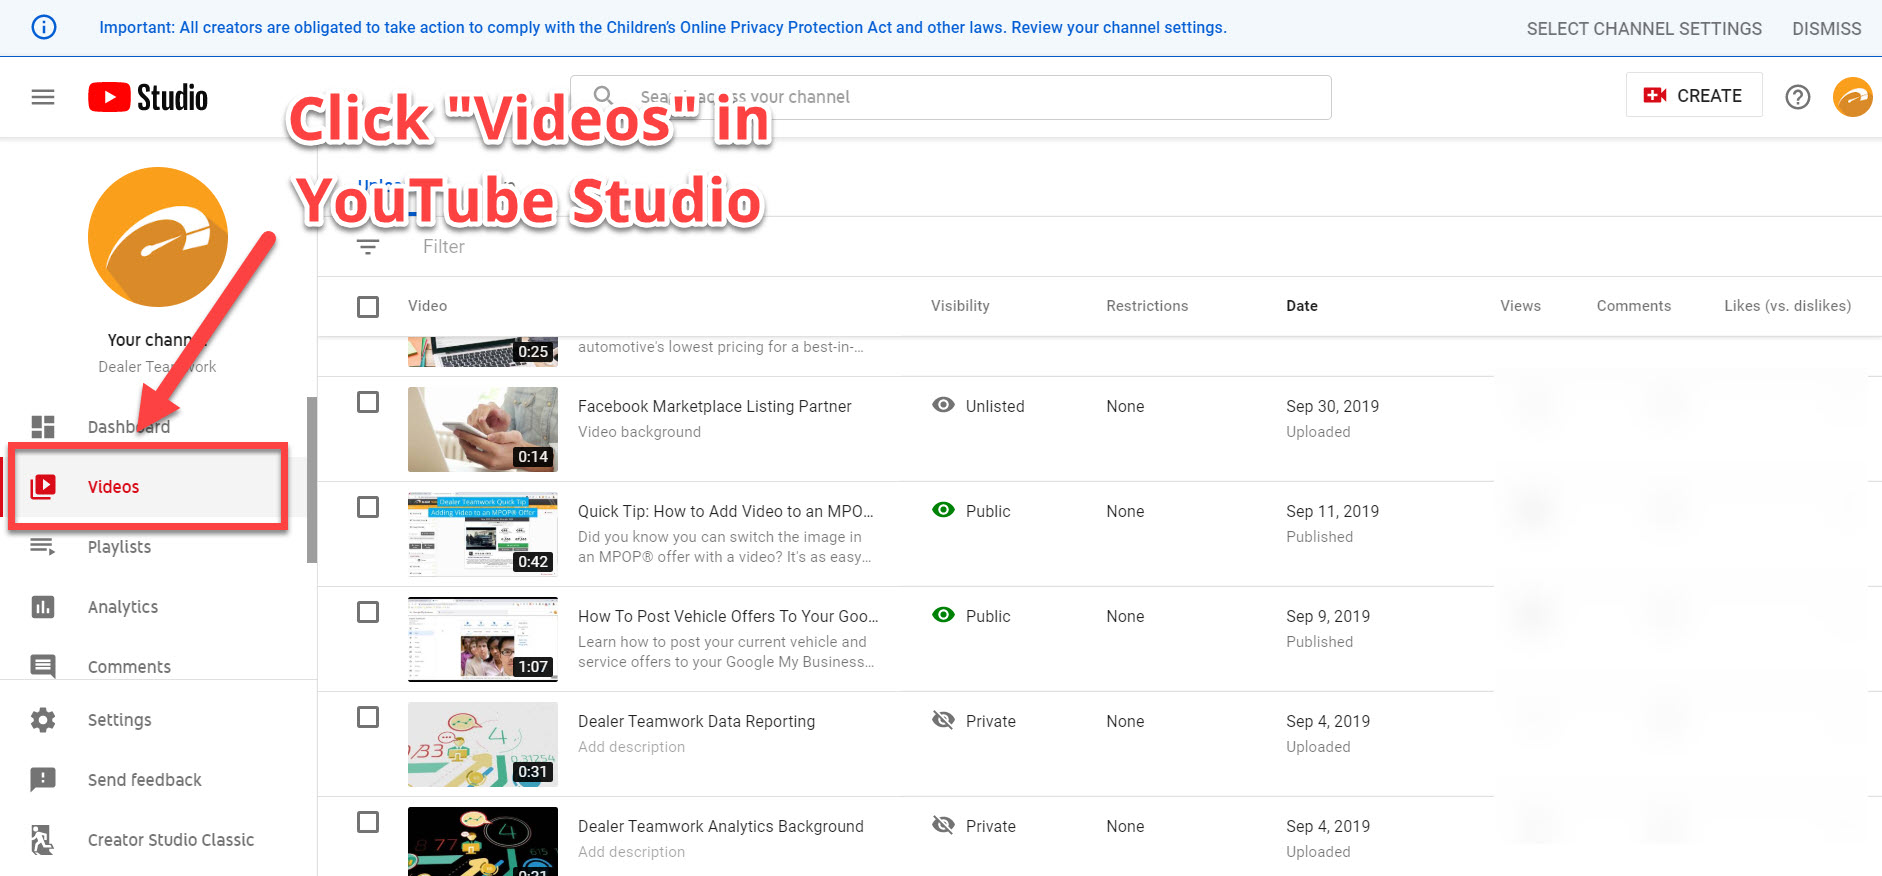 Videos - YouTube Studio - Dealer Teamwork